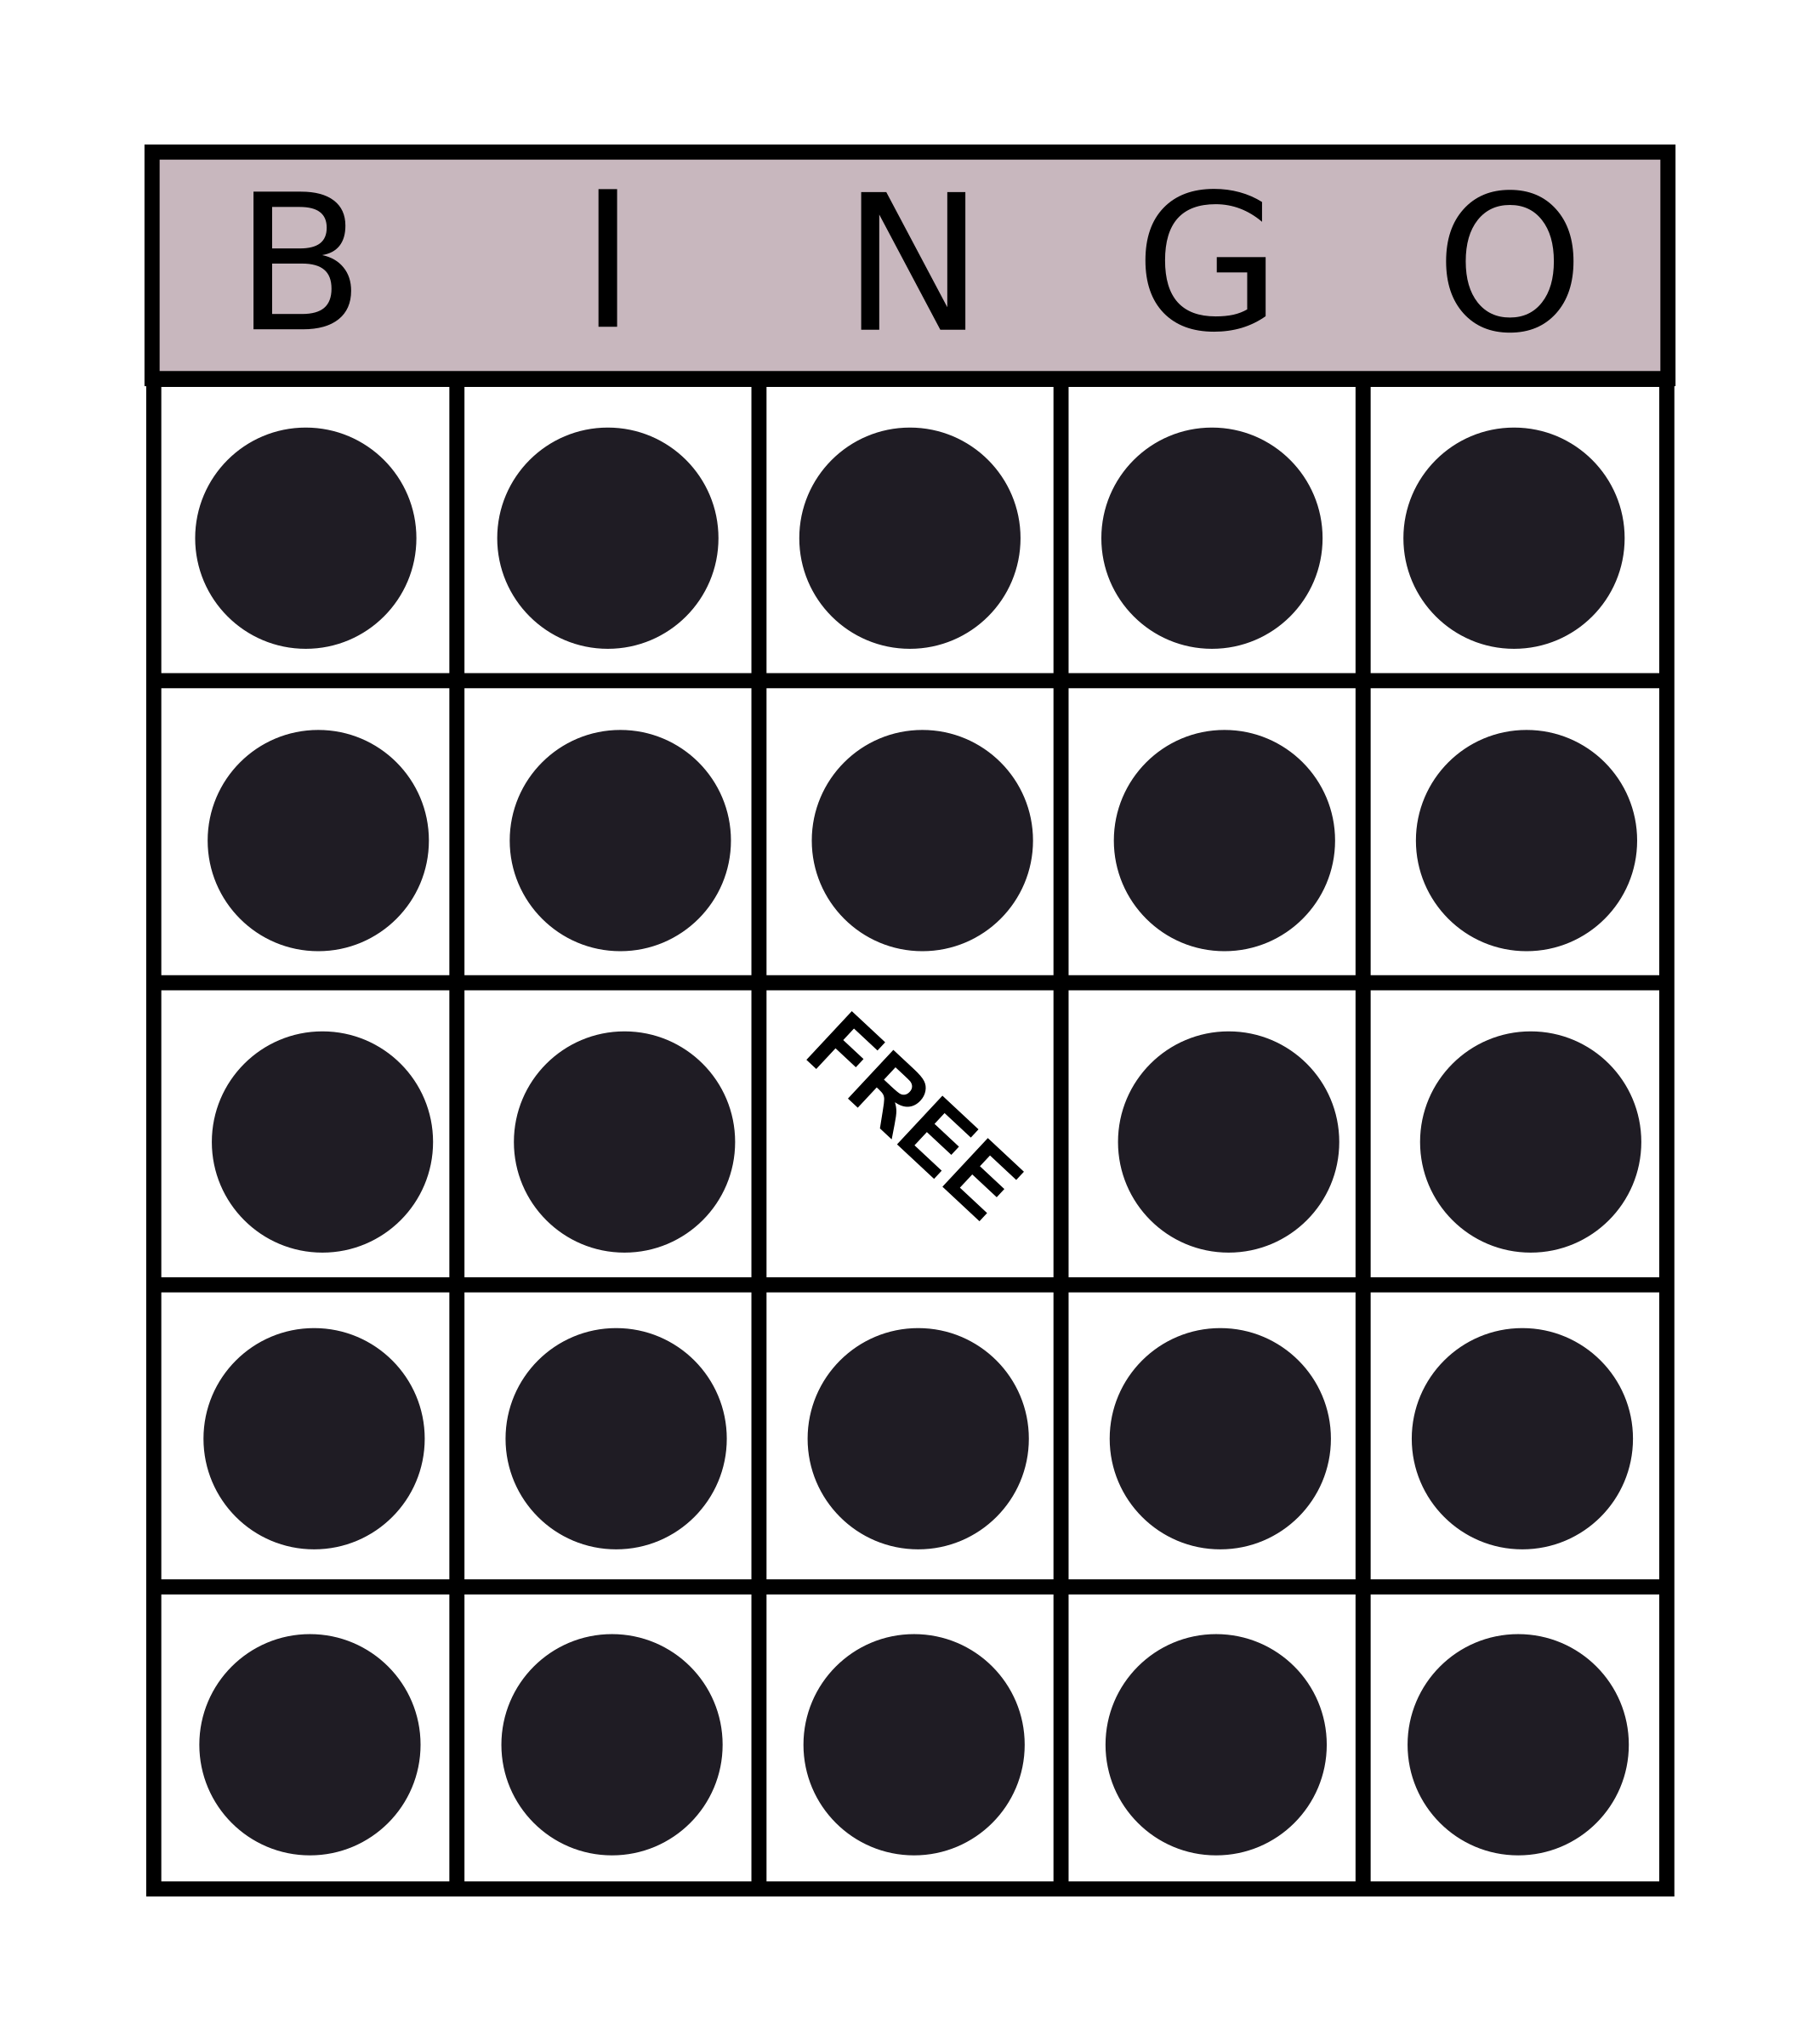 Bingo Card by Andrew_R_Thomas